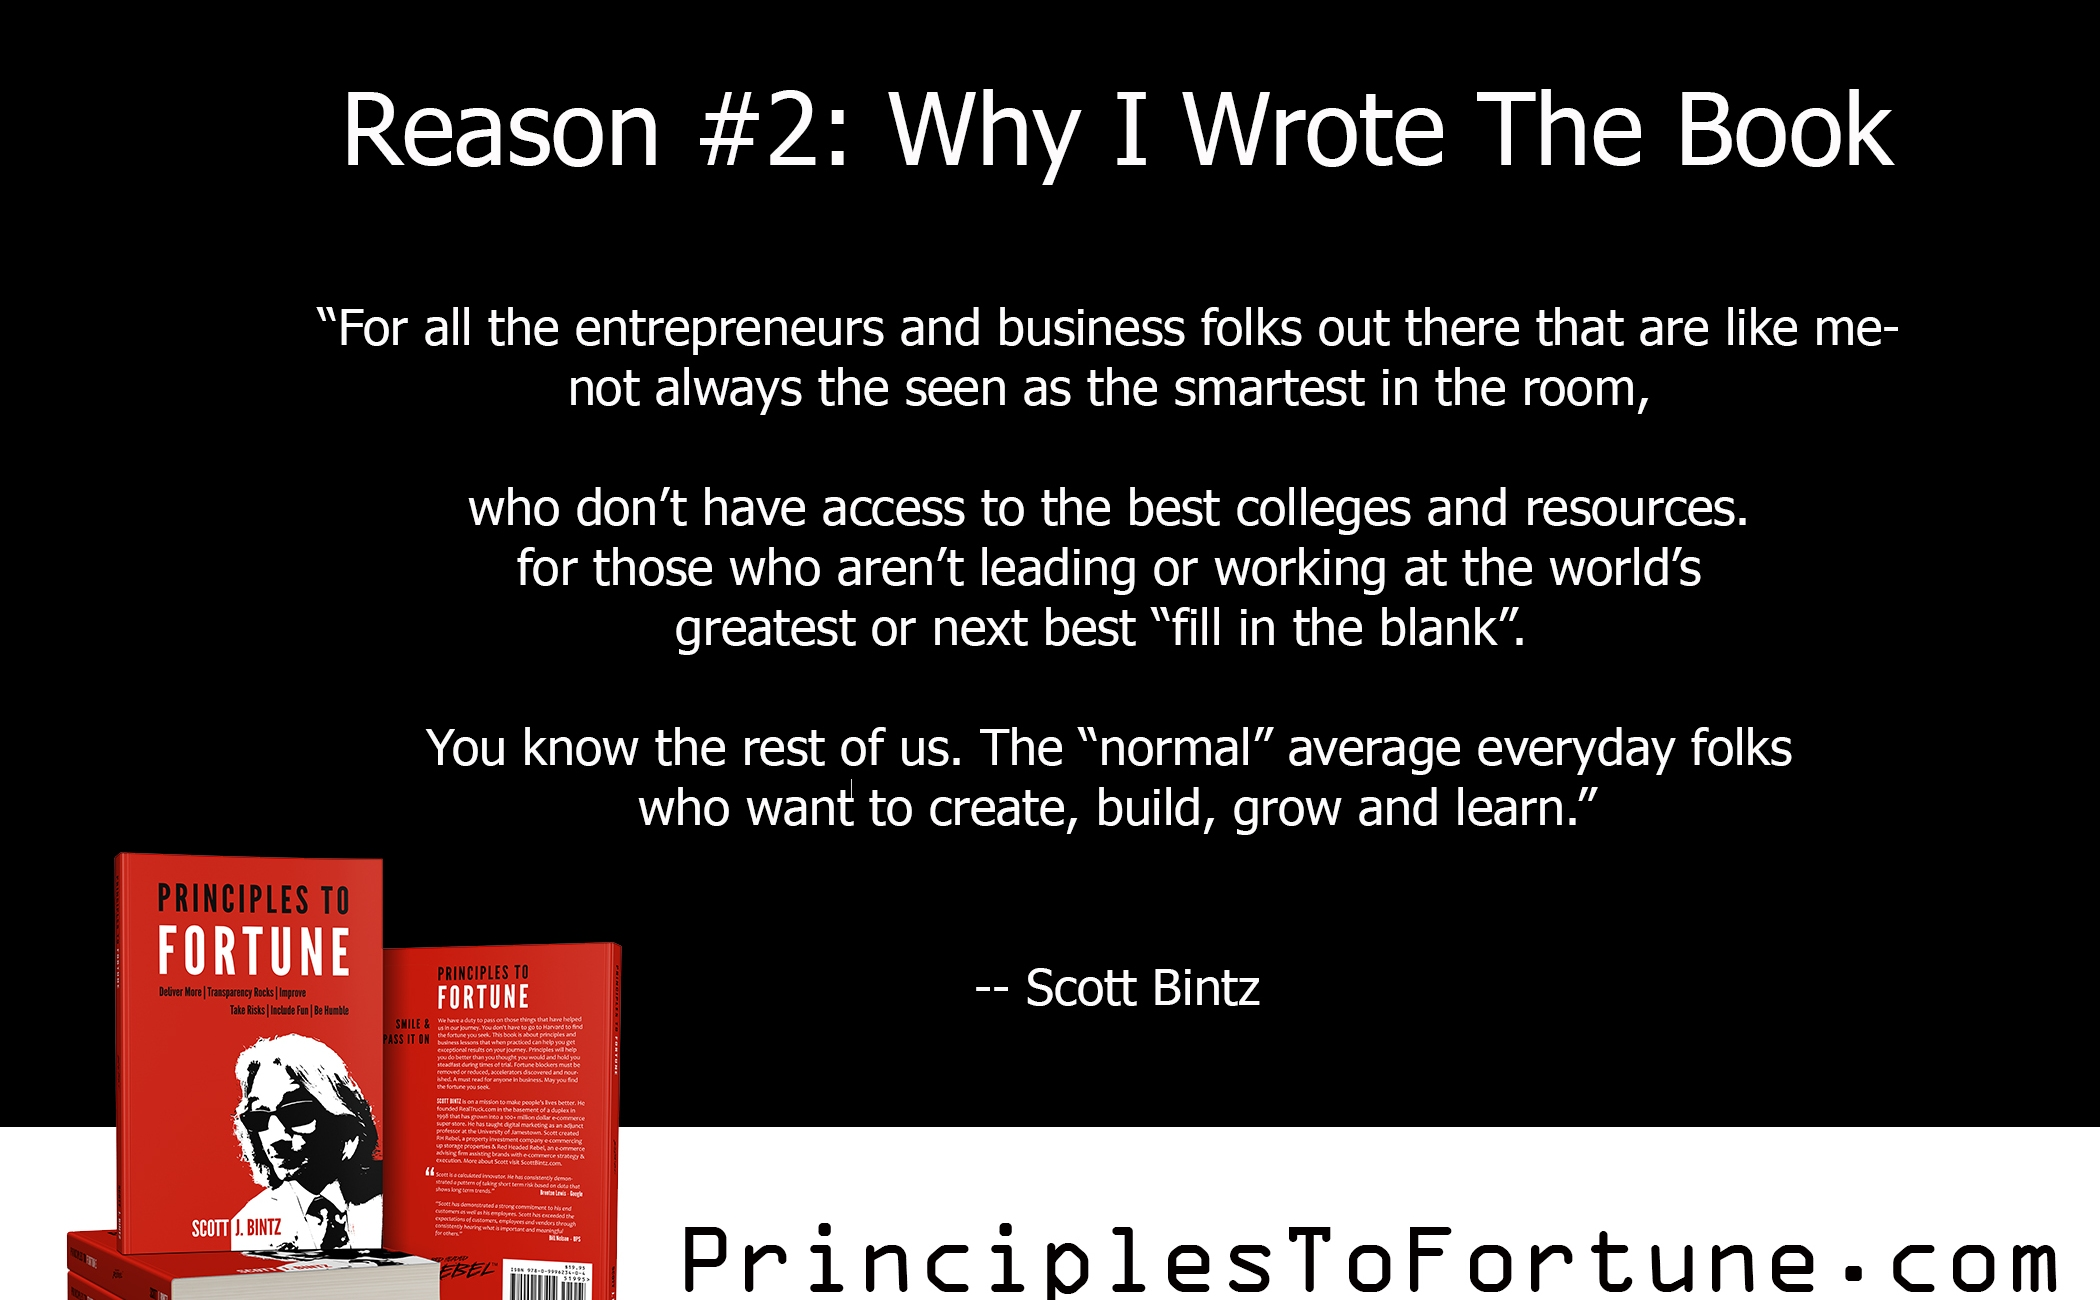 Reason 2: Why I Wrote The Book Principles To Fortune